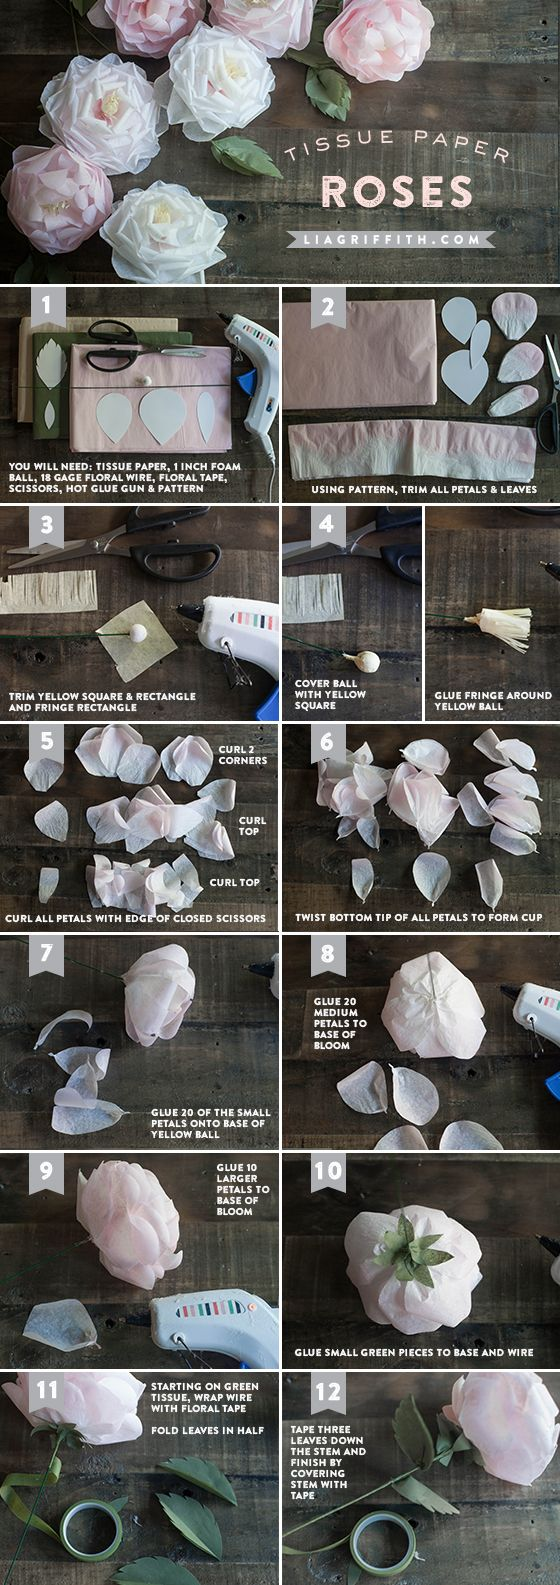 How to make tissue paper roses - pattern http://liagriffith.com/wp-content/uploads/2014/06/TissuePaperRosePattern.pdf